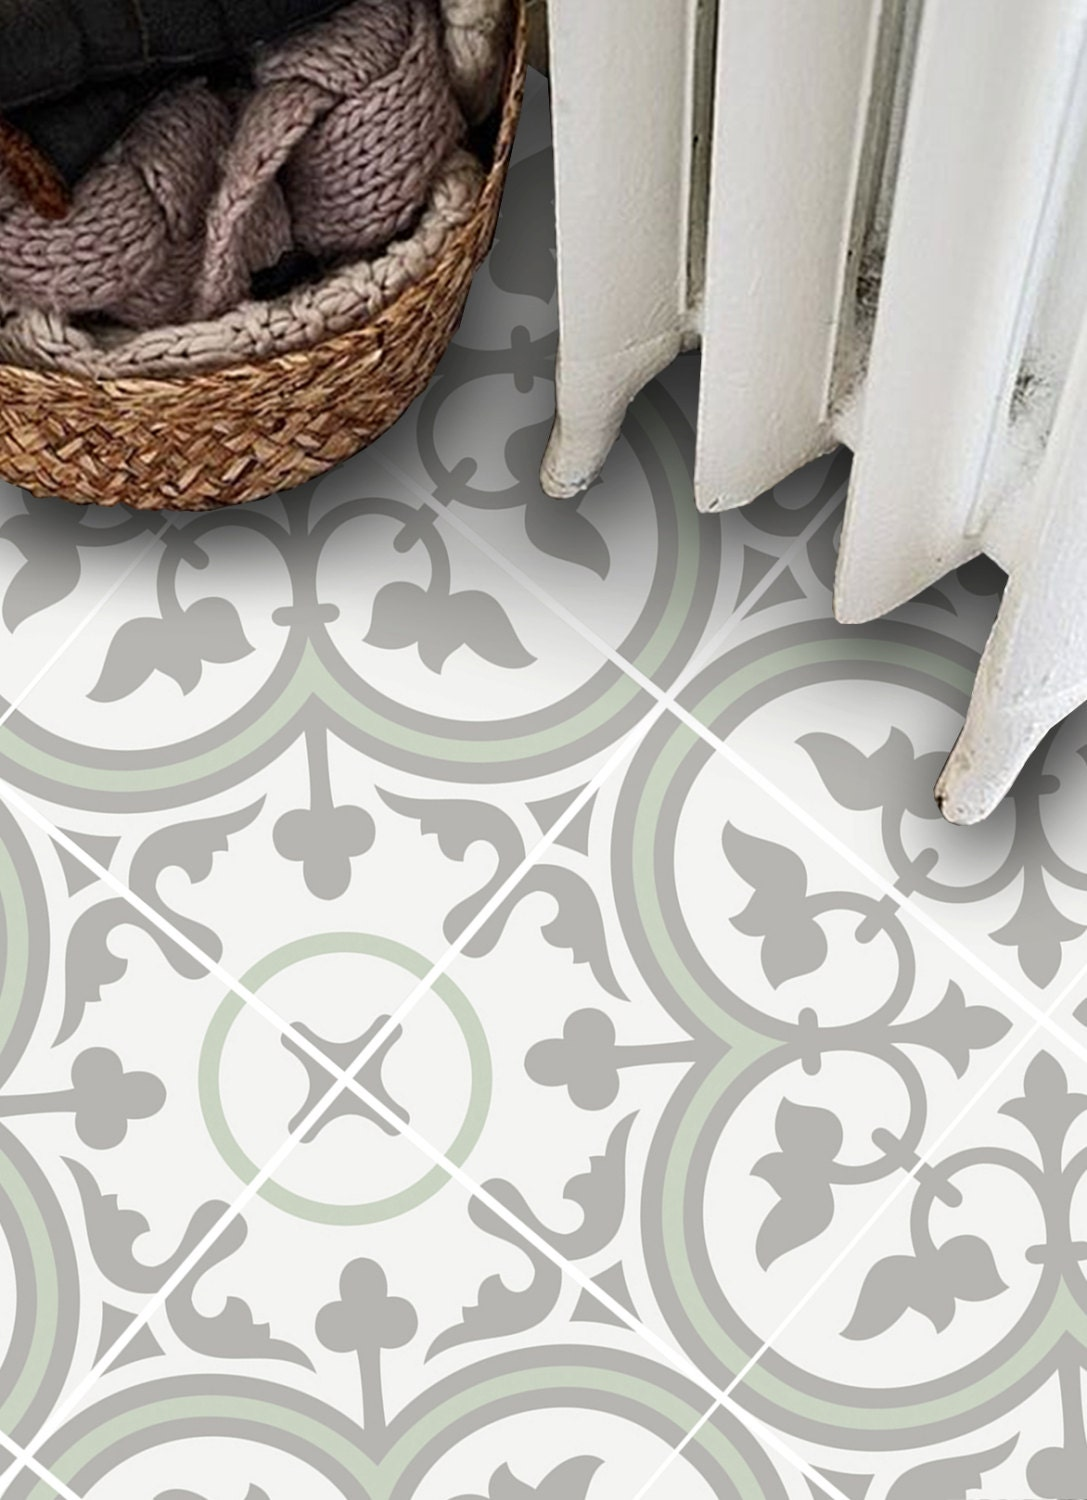 vinyl floor tile sticker floor decals carreaux ciment encaustic trefle 2 tile sticker pack. Black Bedroom Furniture Sets. Home Design Ideas